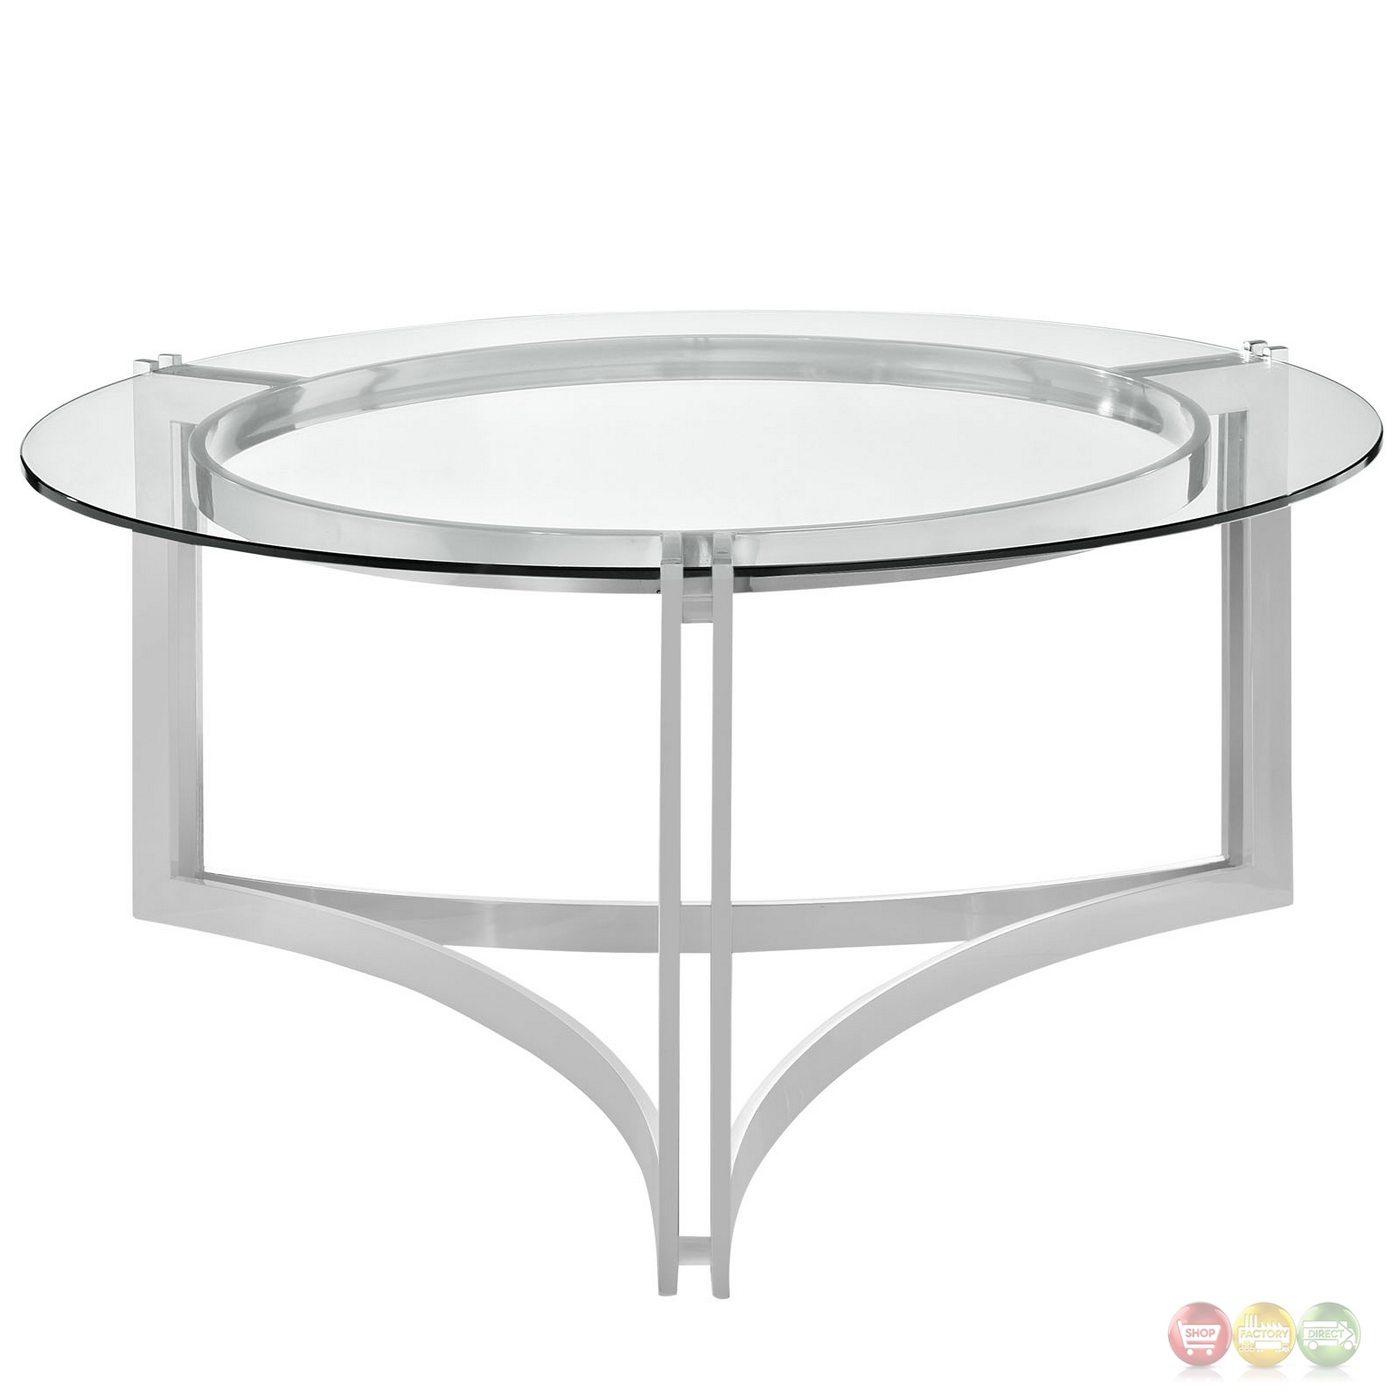 Signet Modern Stainless Steel Coffee Table W Round Tempered Glass Top Silver